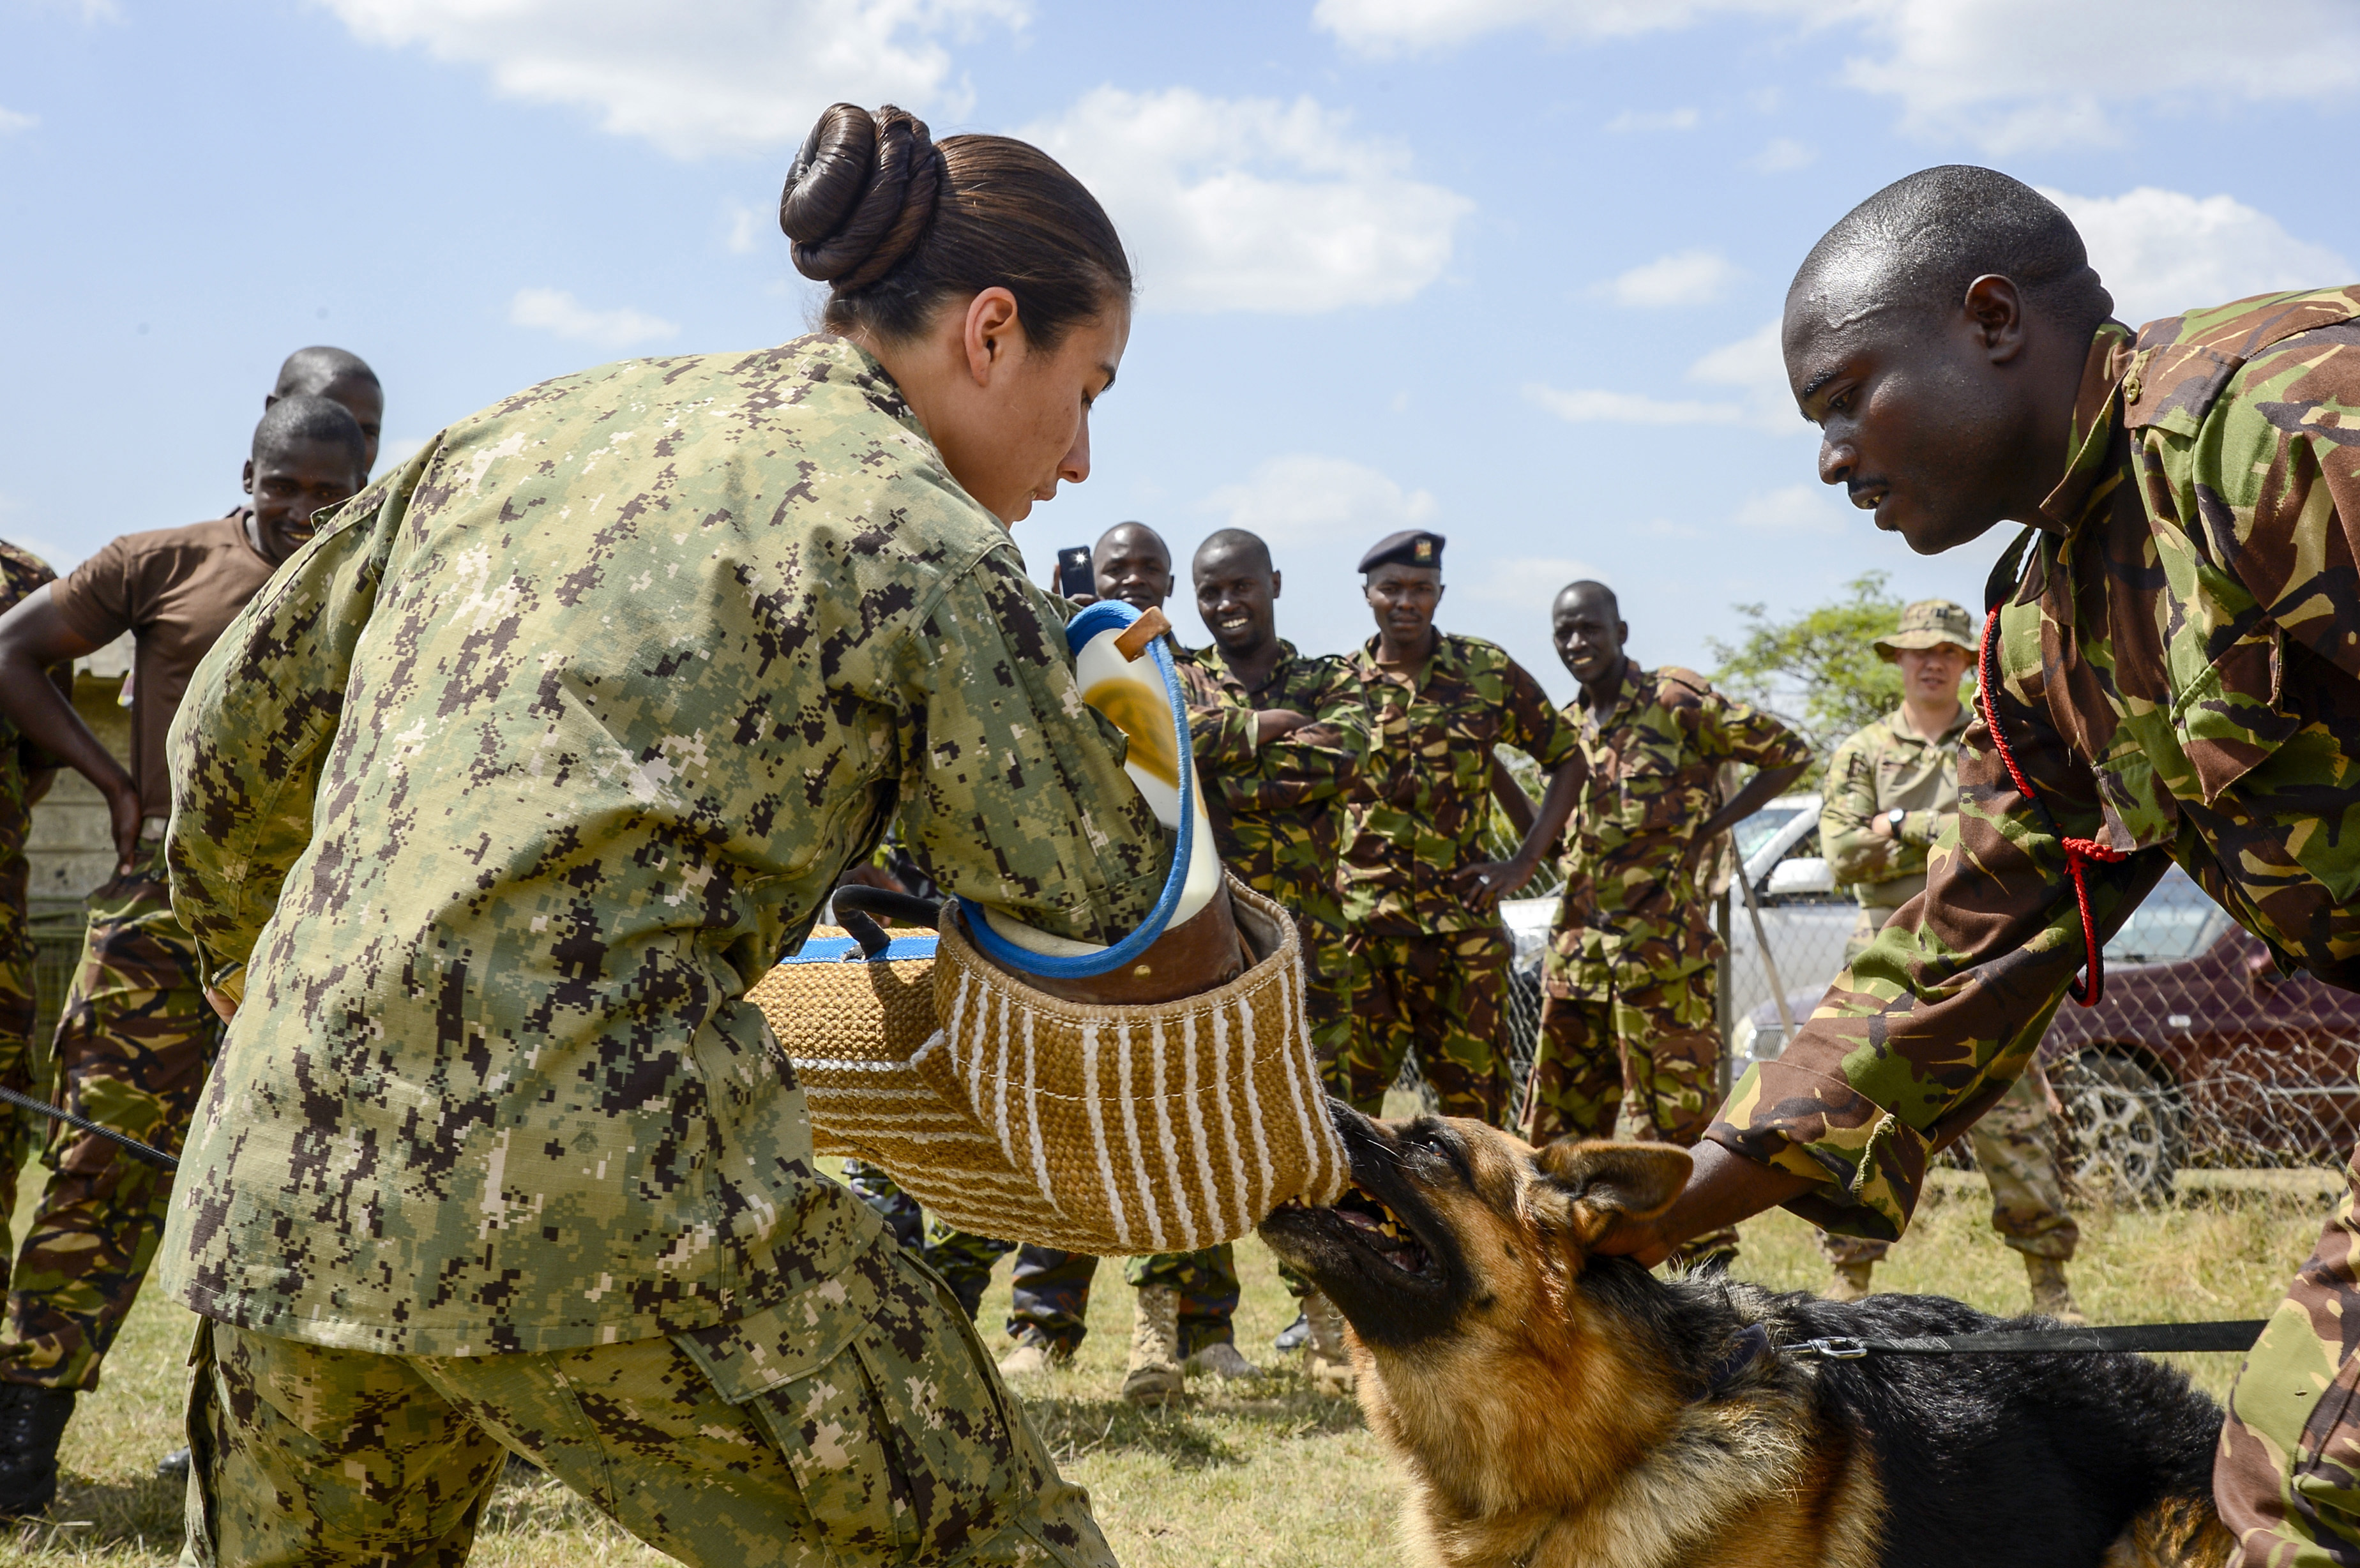 Master at Arms 1st Class Kristina Vargas, the Kennel Master assigned to Camp Lemonnier, and Kenya Defense Force (KDF) Cpl. Robert Magori conduct patrol work and demonstrate different techniques for members of the KDF's 1st Canine Regiment during a Military Working Dog knowledge exchange, in Nairobi, Kenya, August 7, 2018. The exchange gave a chance for American and Kenyan forces to learn and work with each other to have a better understanding of each other's capabilities.(U.S. Navy Photo by Mass Communication Specialist 2nd Class Timothy M. Ahearn)